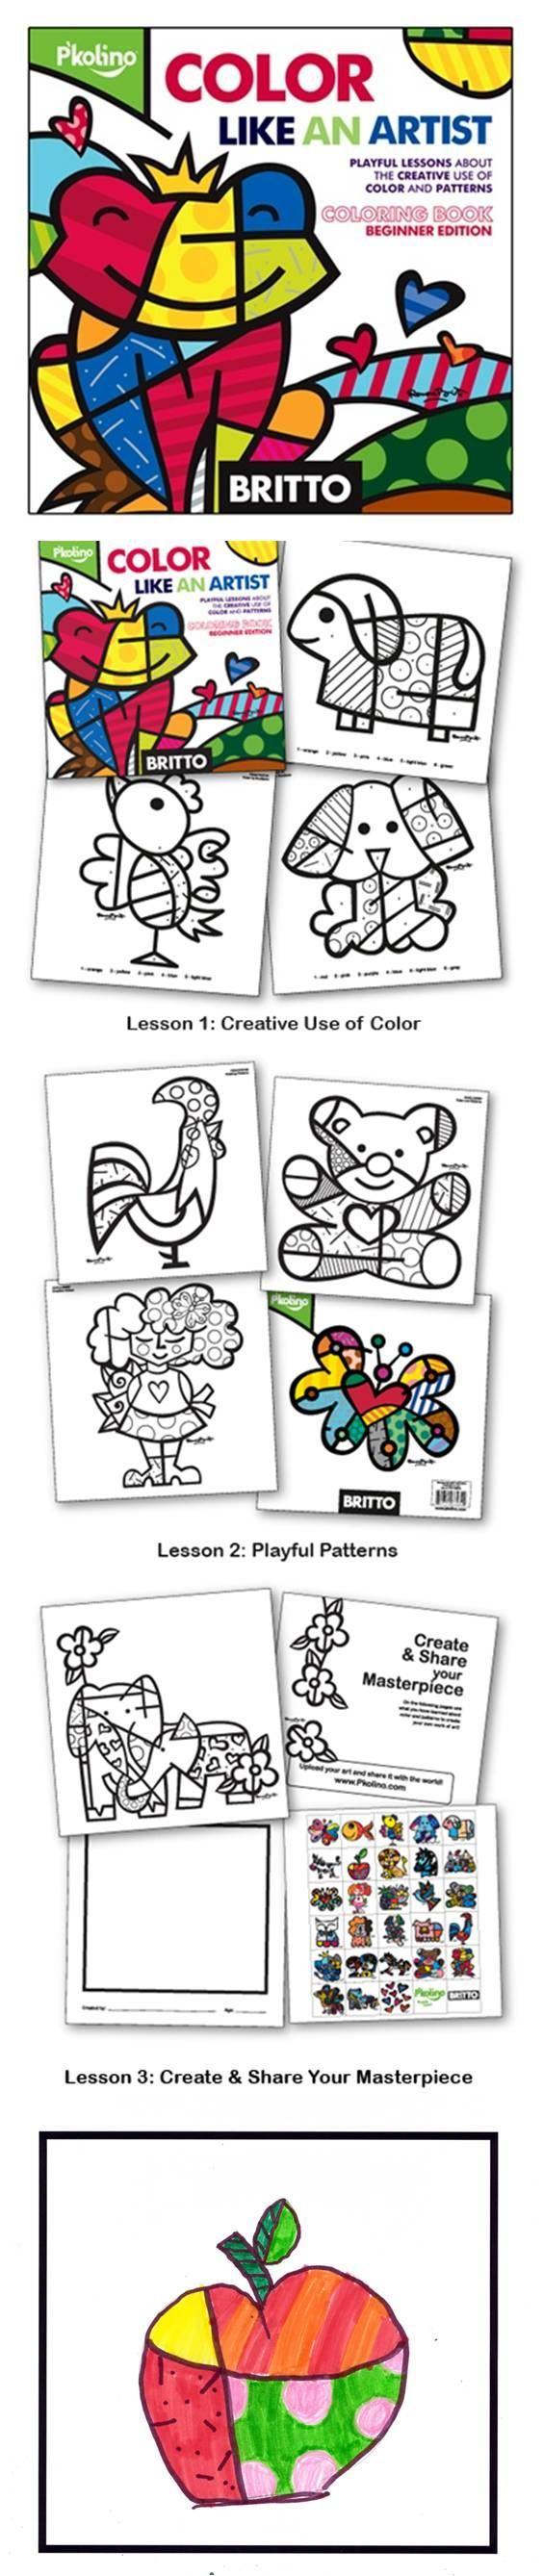 This playful coloring book teaches children about colors & patterns through the vibrant art & instruction of pop artist Romero Britto